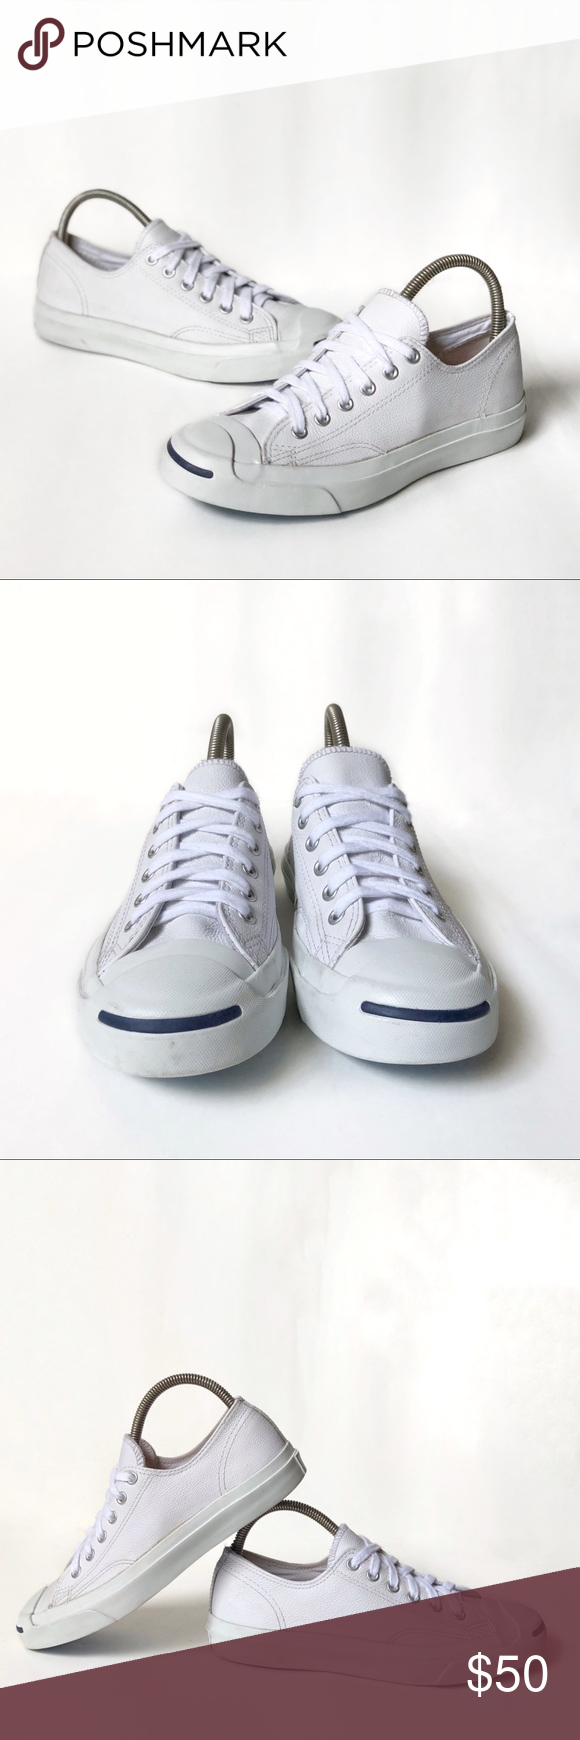 a23feb9428c9 Converse Jack Purcell white leather shoes Converse Jack Purcell Leather Ox  In White navy 1s961 Size Mens 6.5 Womens 8 They are used but still have a  lot of ...